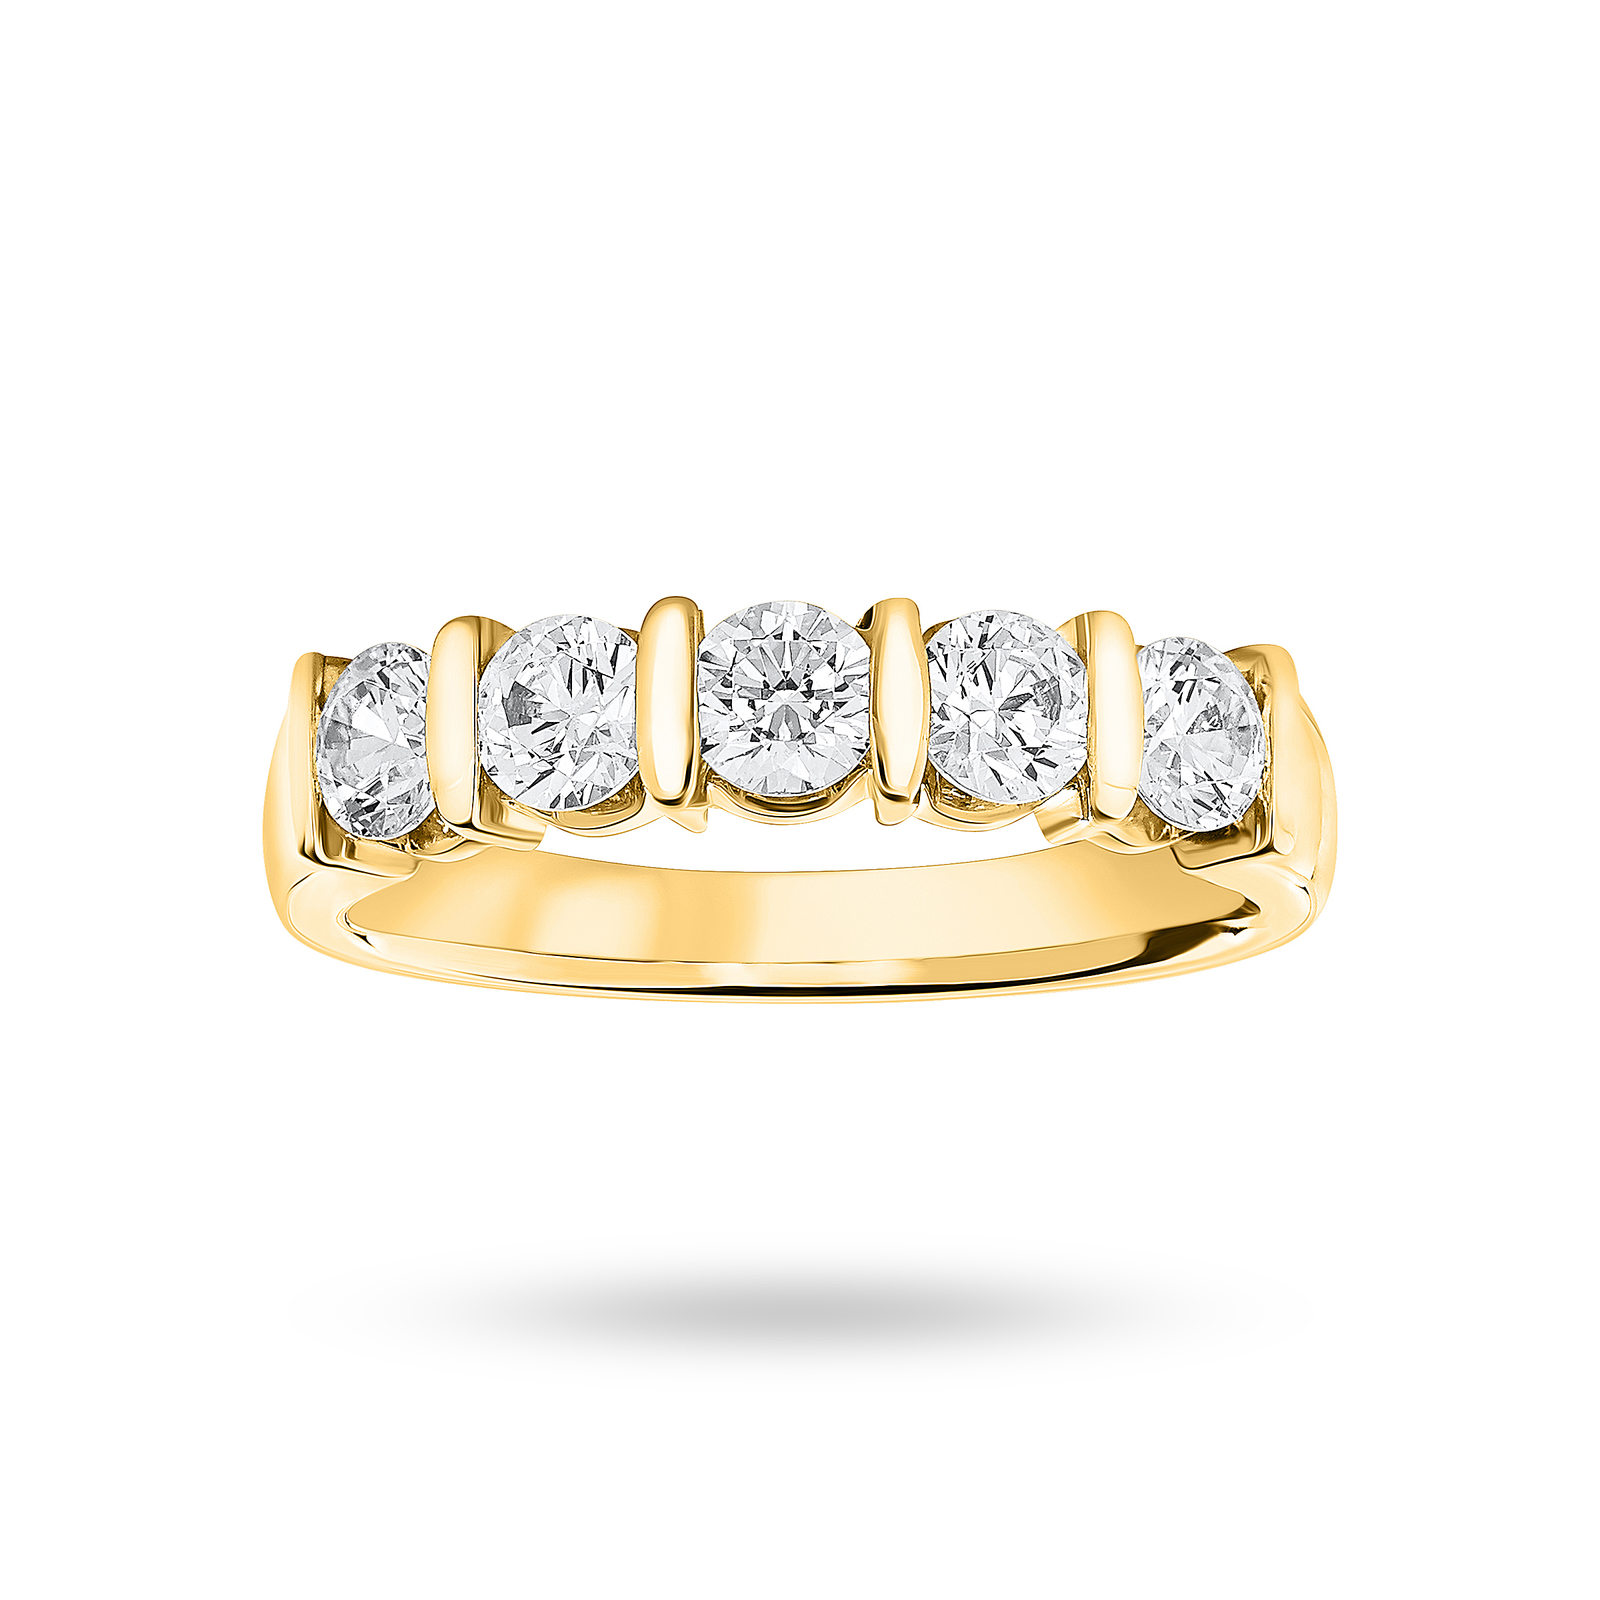 18 Carat Yellow Gold 0.90 Carat Brilliant Cut Bar Half Eternity Ring